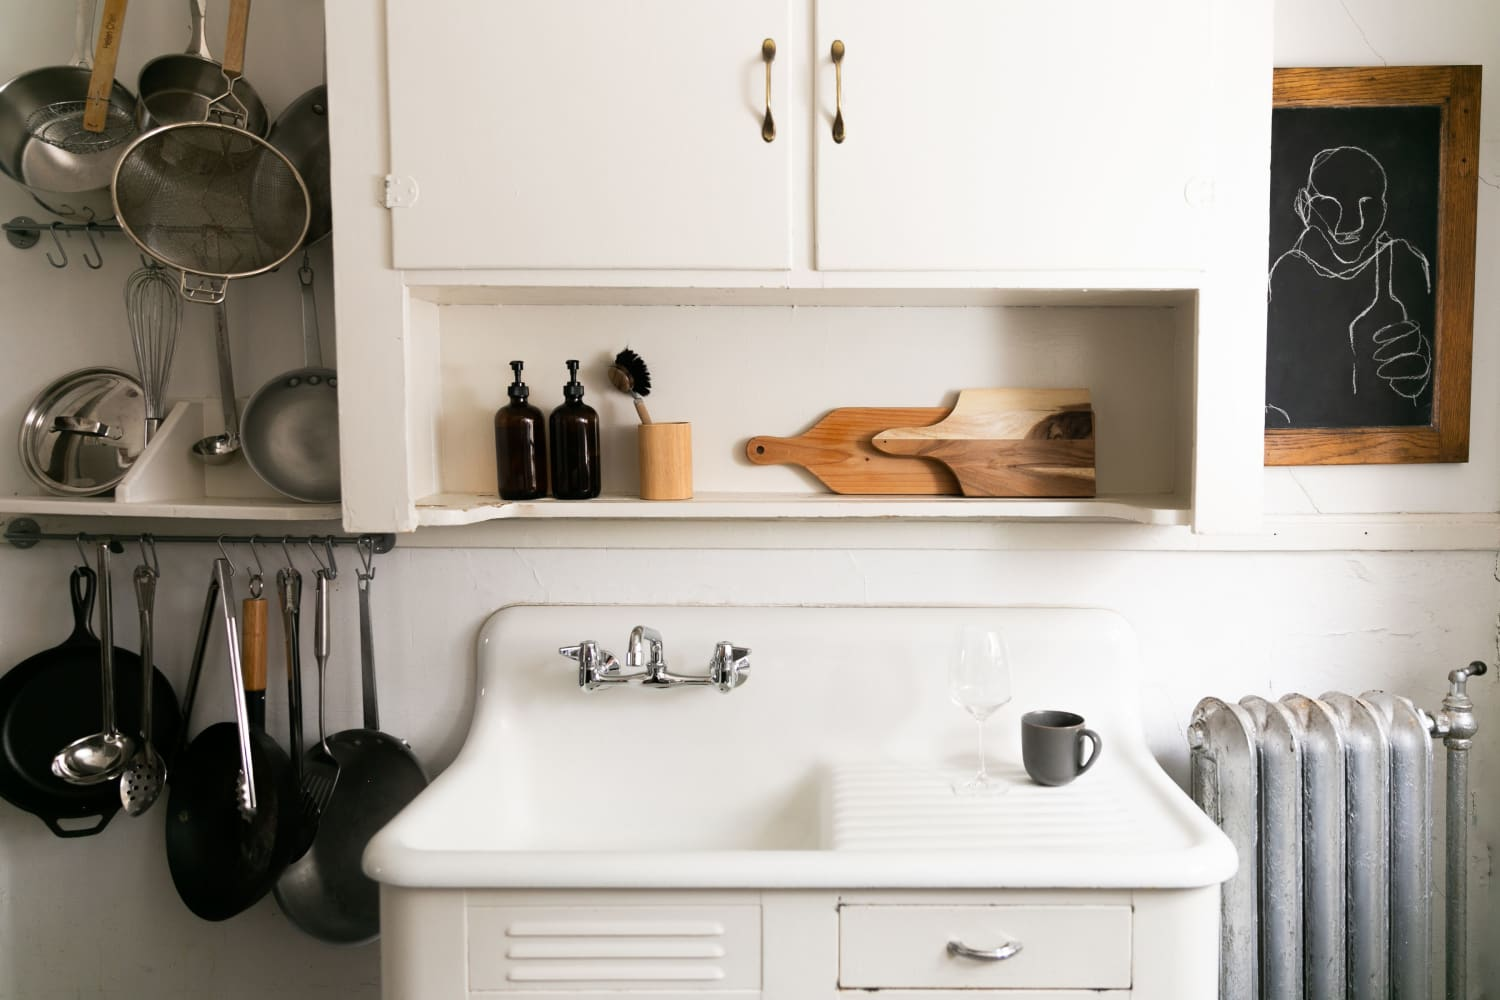 10 Cleaning Tips from Southern Grandmas